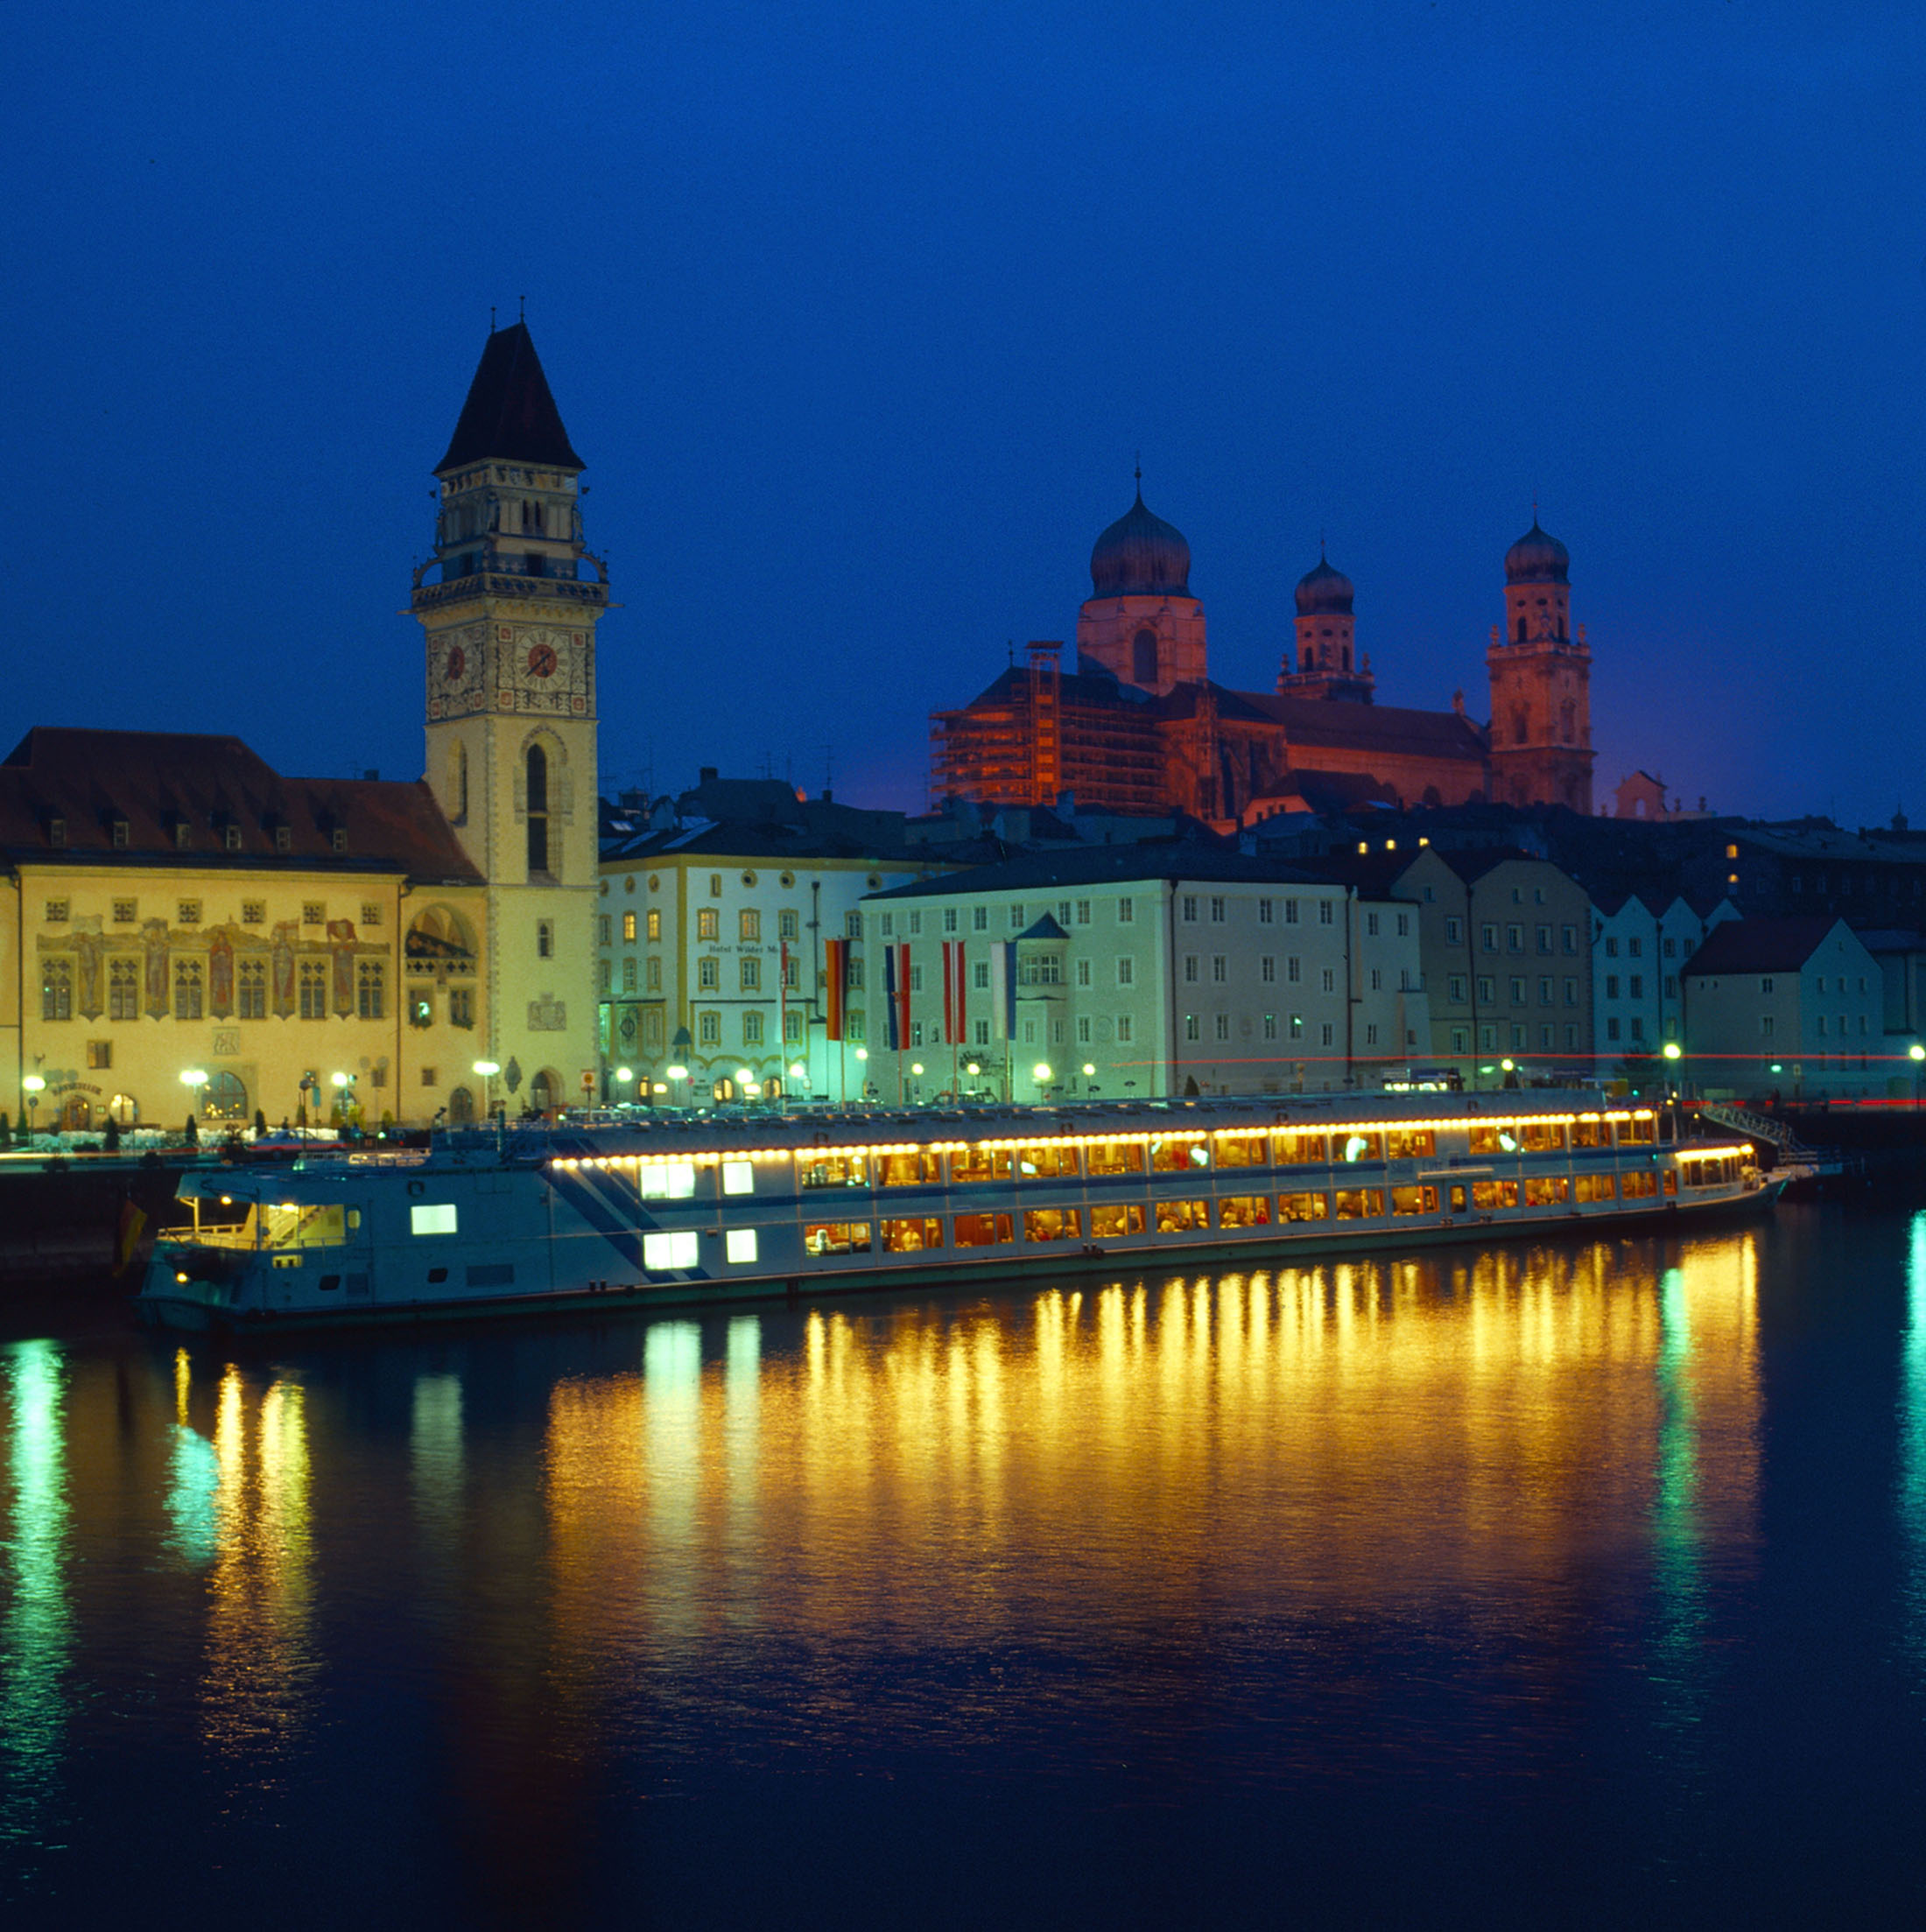 Enjoy an unforgettable view of Passau with its Italian flair and colorful buildings.